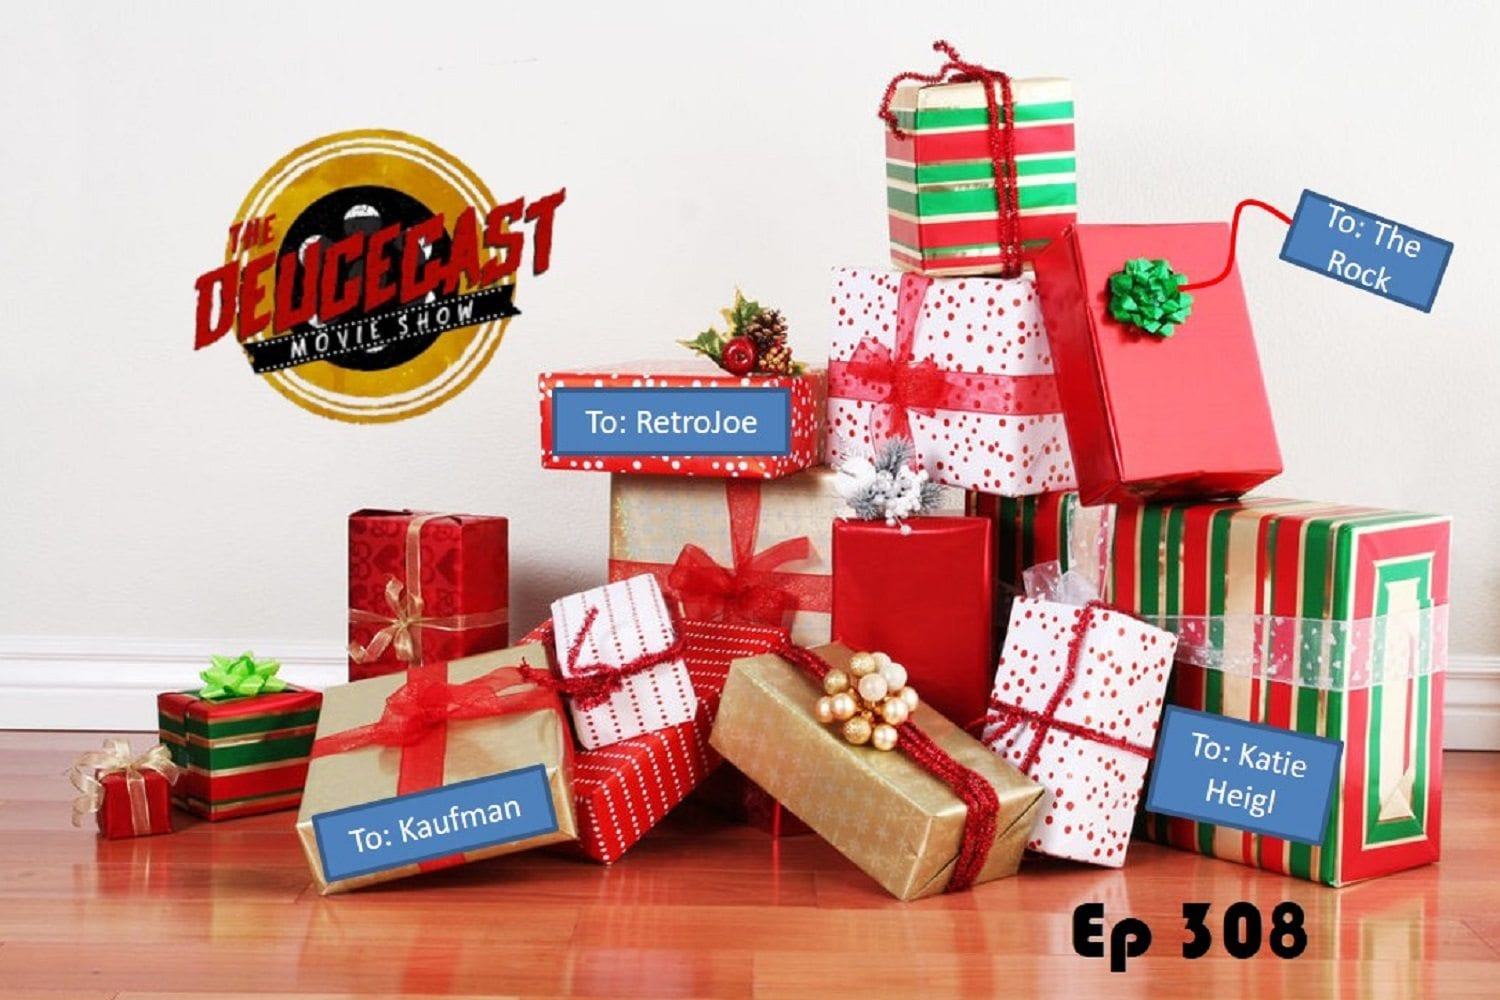 The Deucecast Movie Show #308: 2017's Christmas Gifts